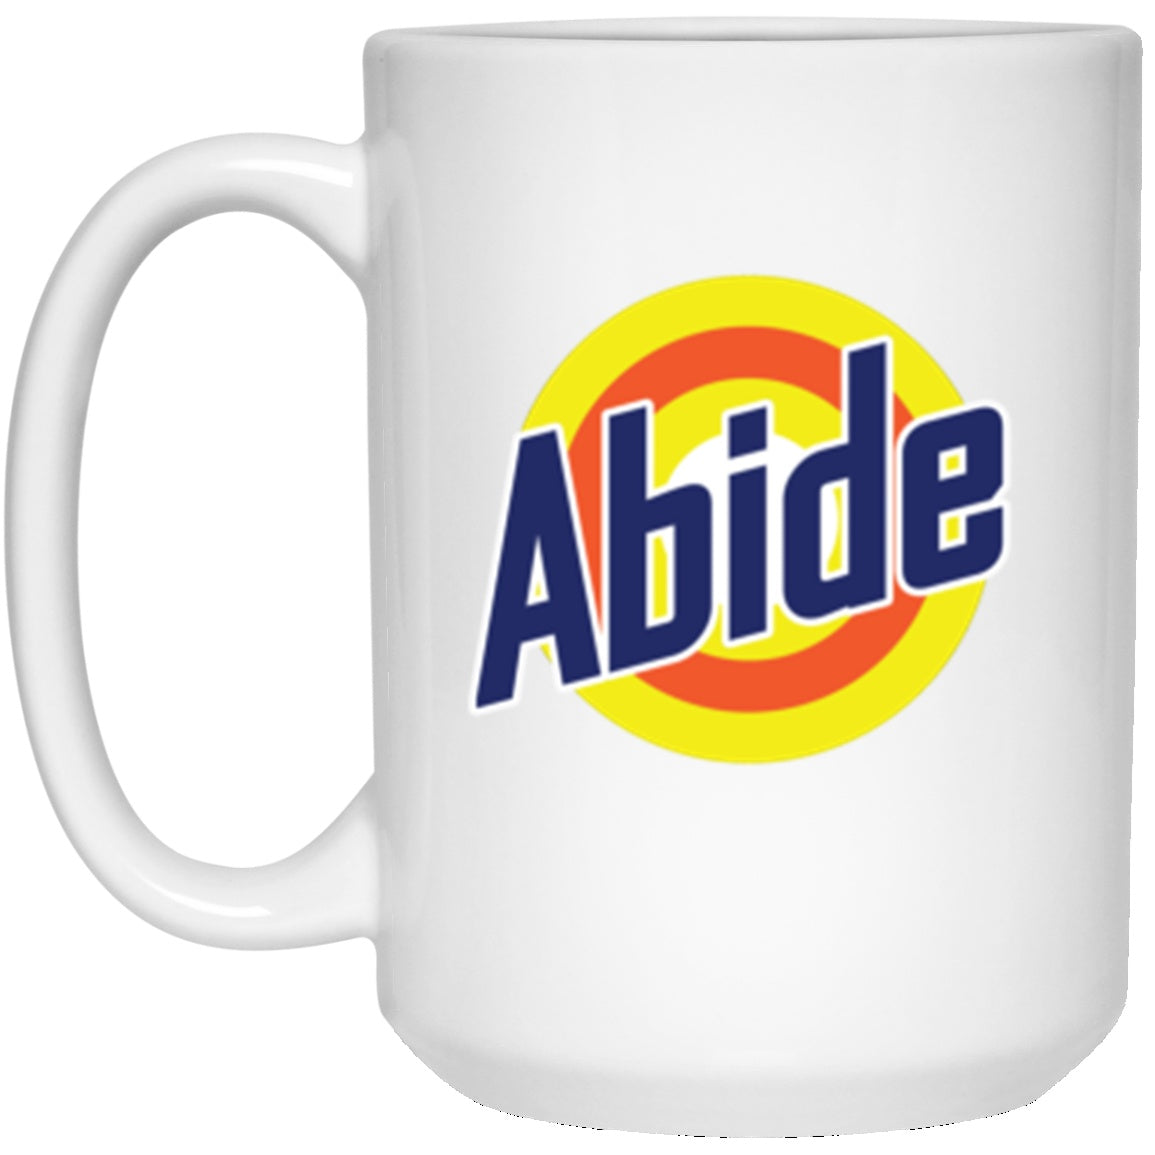 Drinkware - Abide Tide White Mug 15oz (2-sided)